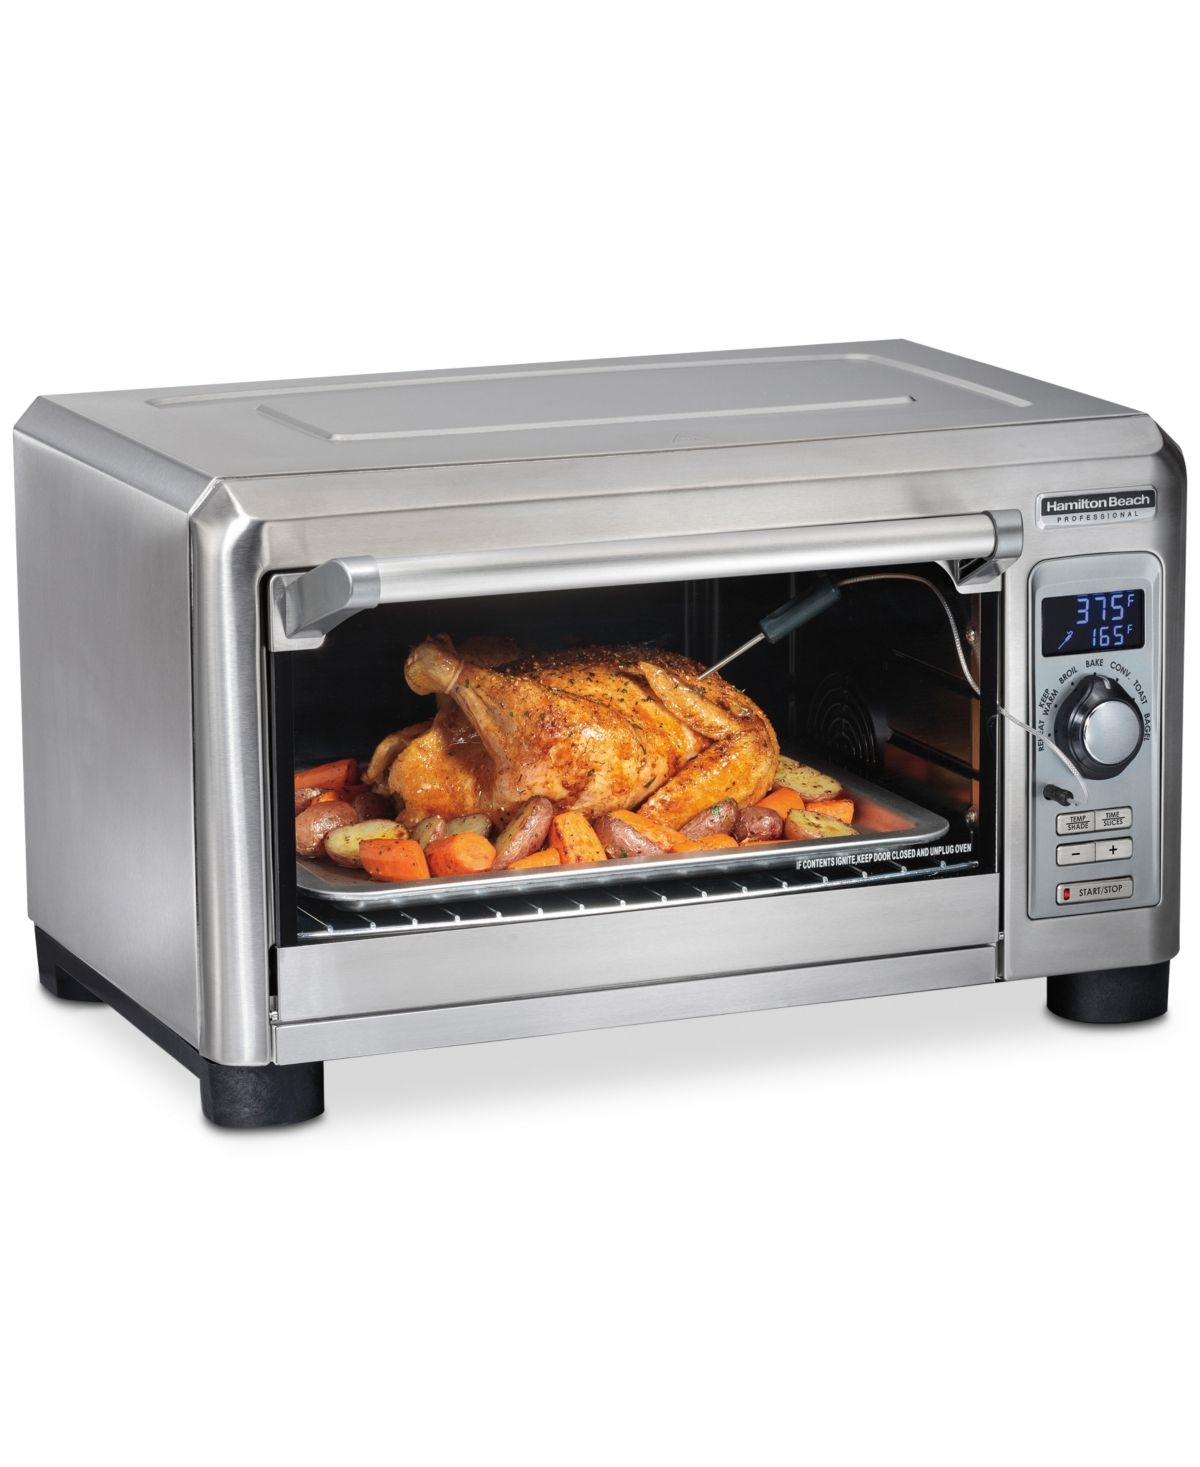 Hamilton Beach Professional Digital Countertop Oven Reviews